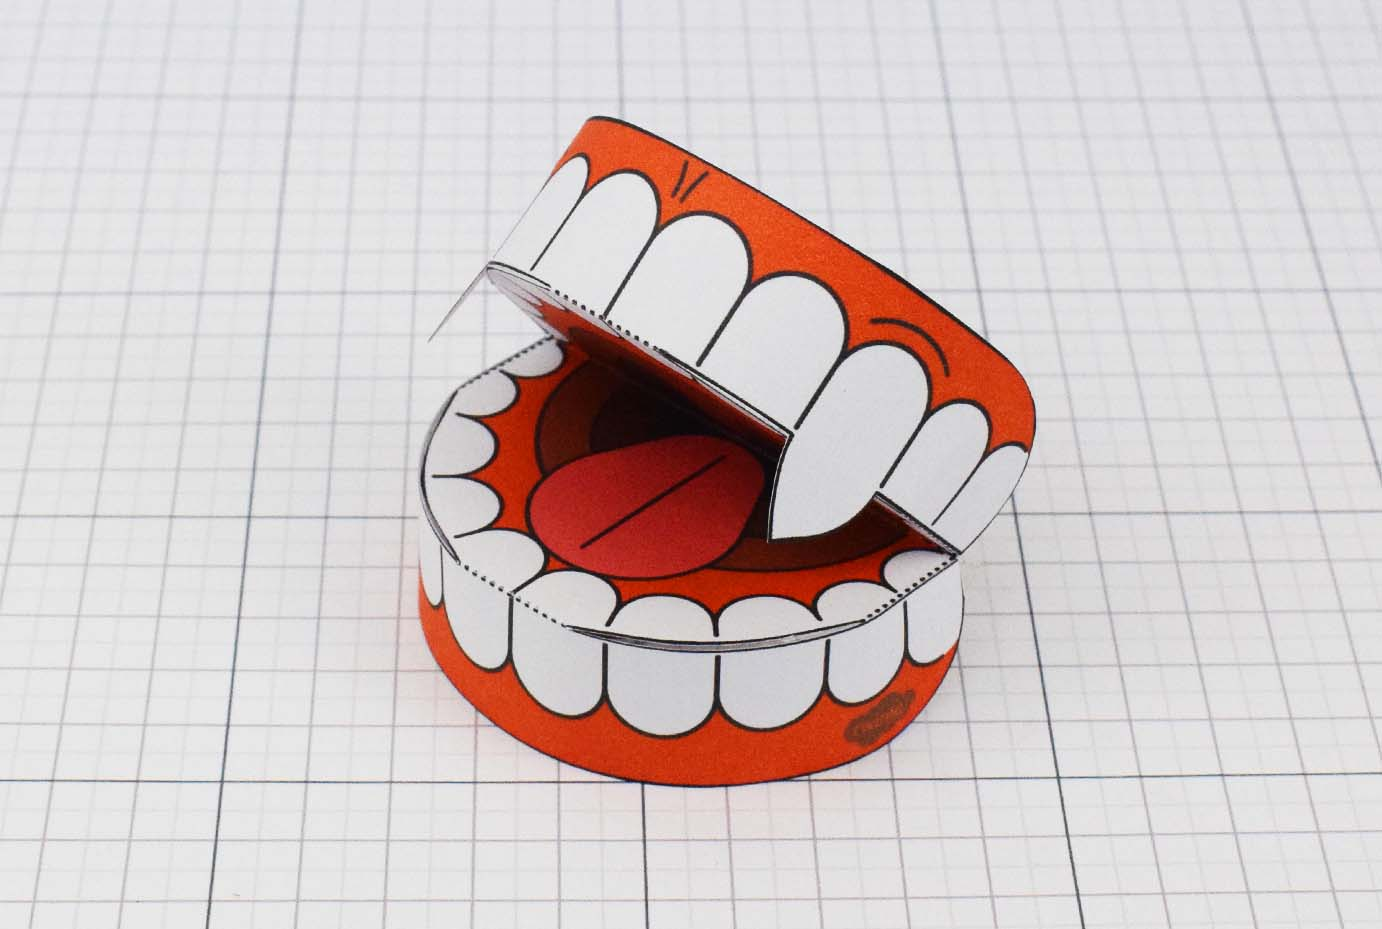 PTI Halloween Vampire Teeth Paper Toy Image from Twinkl - Main